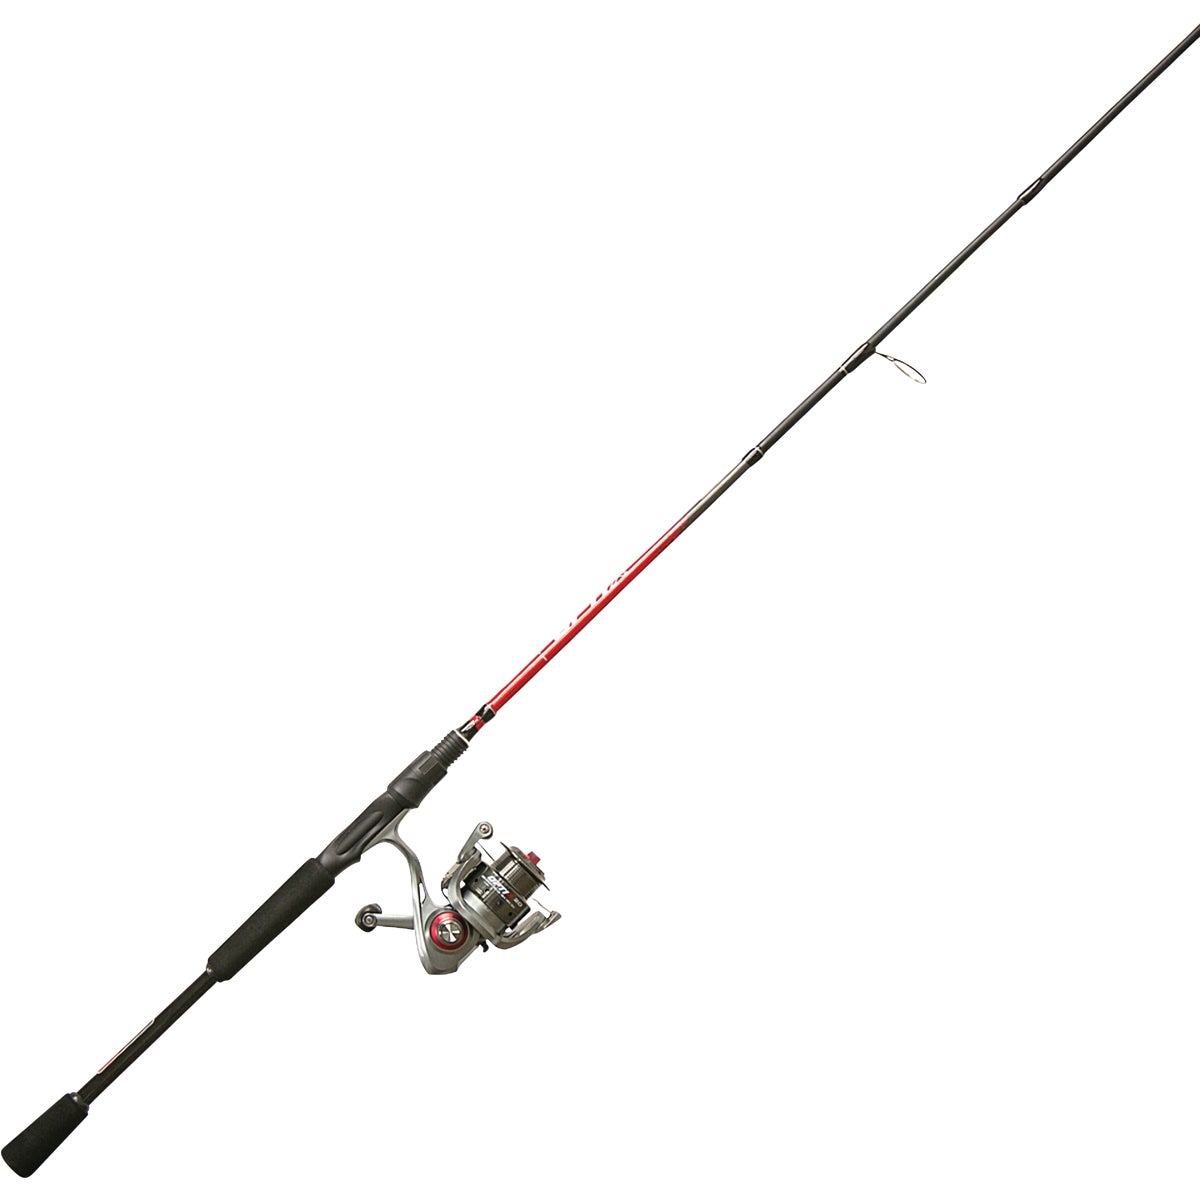 7' MED SPINNING ROD/REEL - OP4070MC by Zebco